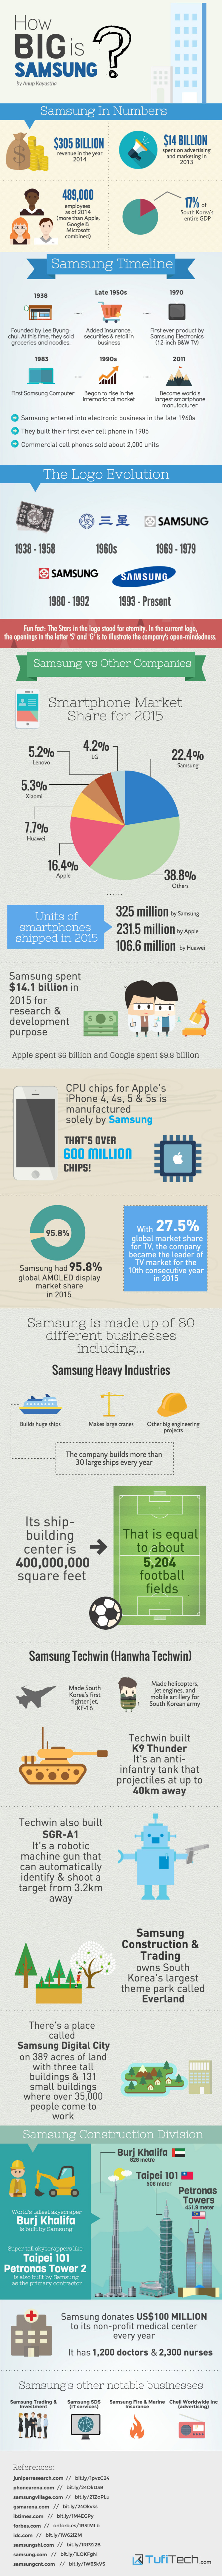 How-Big-Is-Samsung-Infographic